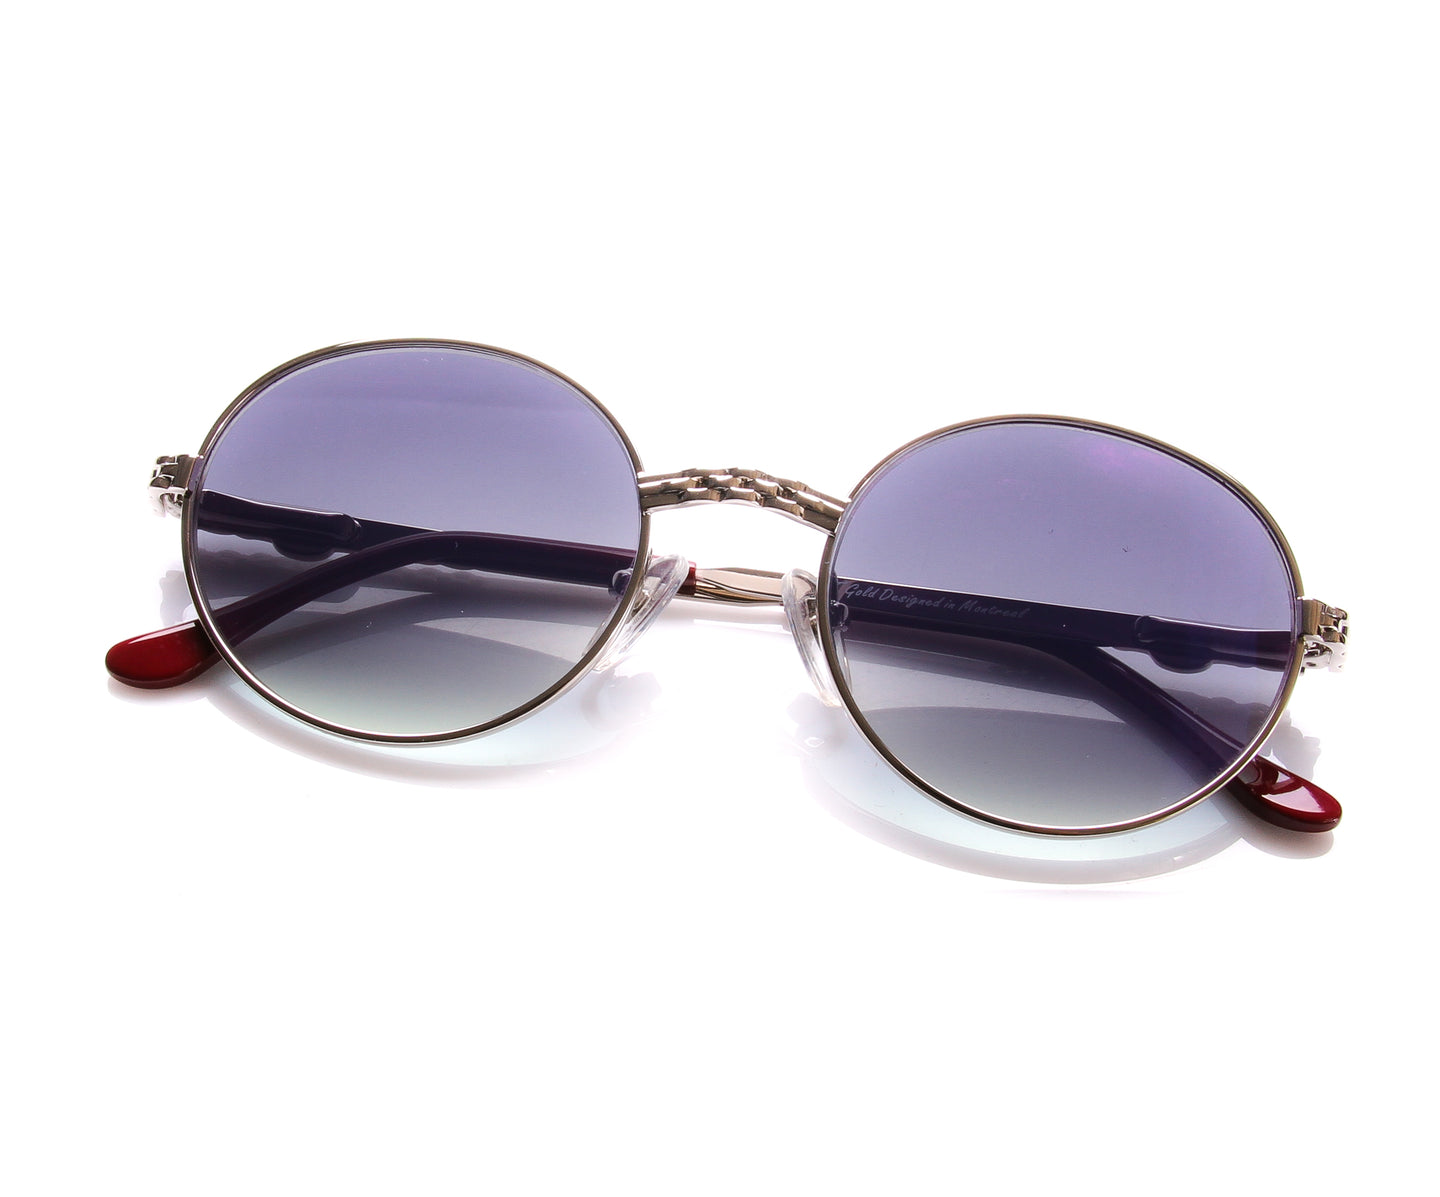 24KT Masterpiece White Gold (Midnight Strip), VF Masterpiece , glasses frames, eyeglasses online, eyeglass frames, mens glasses, womens glasses, buy glasses online, designer eyeglasses, vintage sunglasses, retro sunglasses, vintage glasses, sunglass, eyeglass, glasses, lens, vintage frames company, vf